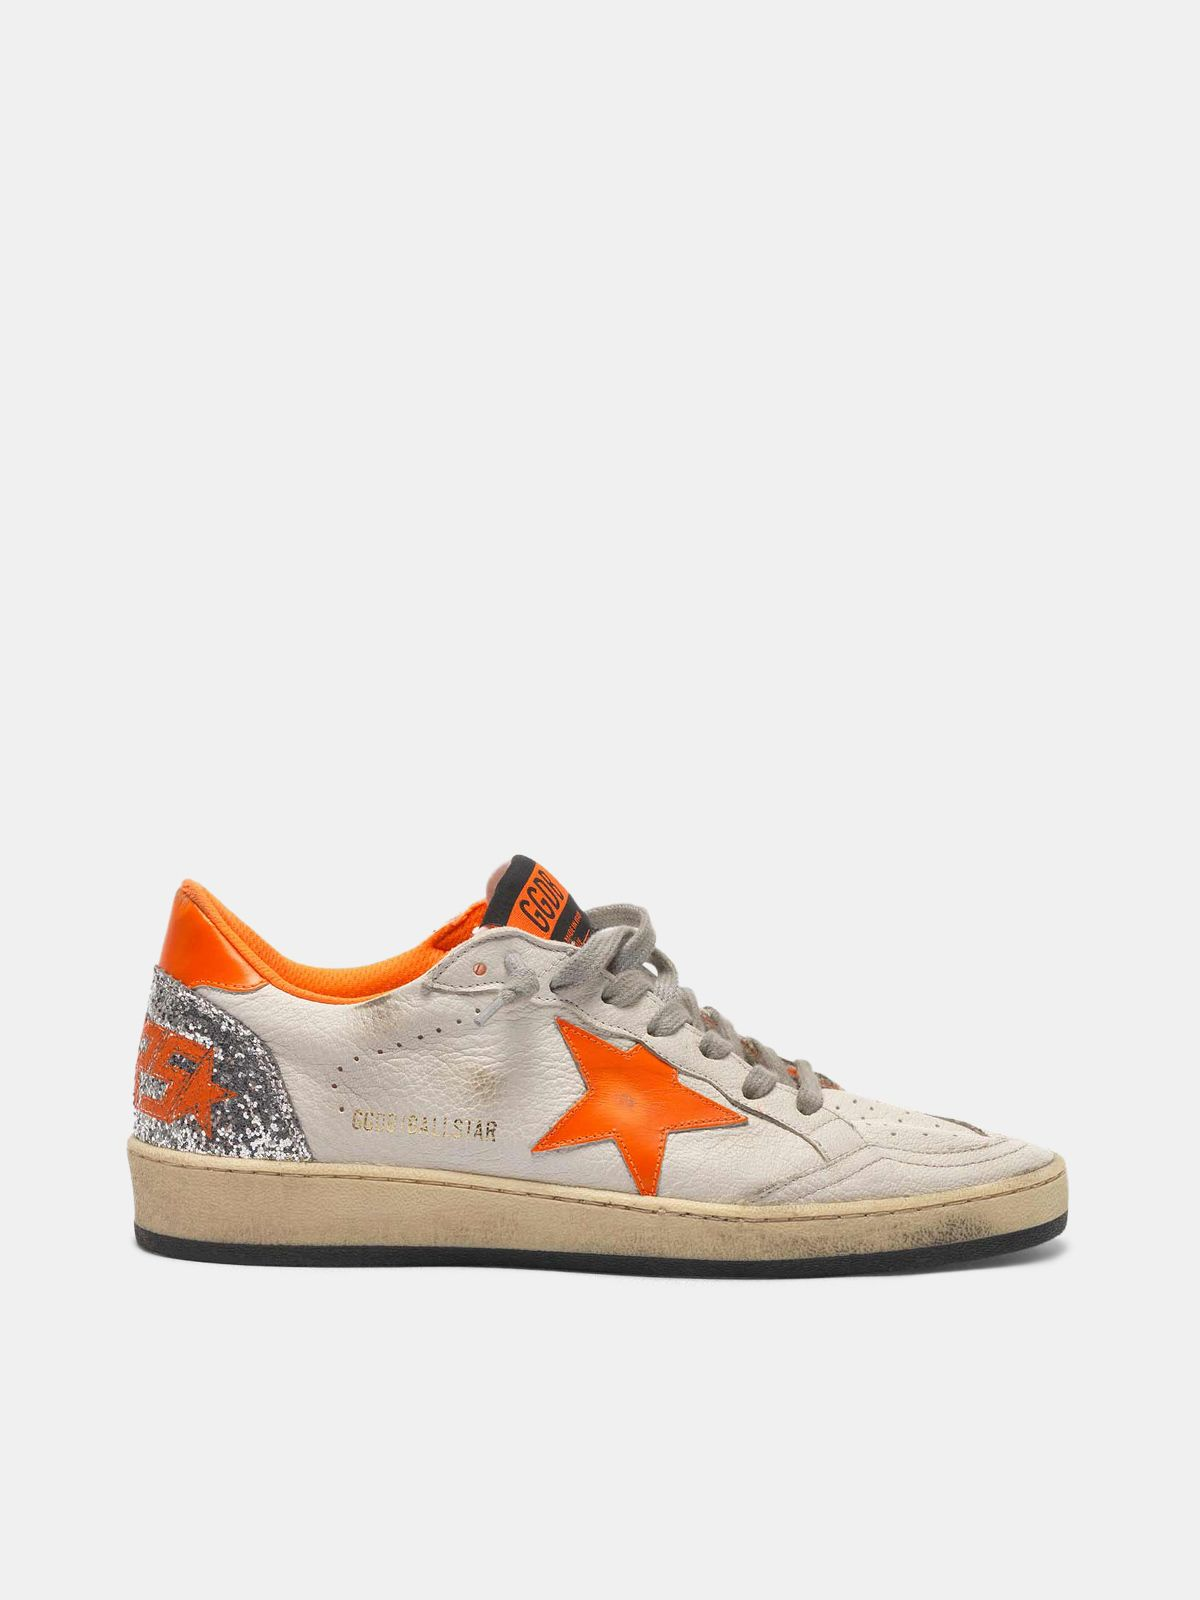 Golden Goose - Ball Star sneakers with fluorescent details and glittery back in